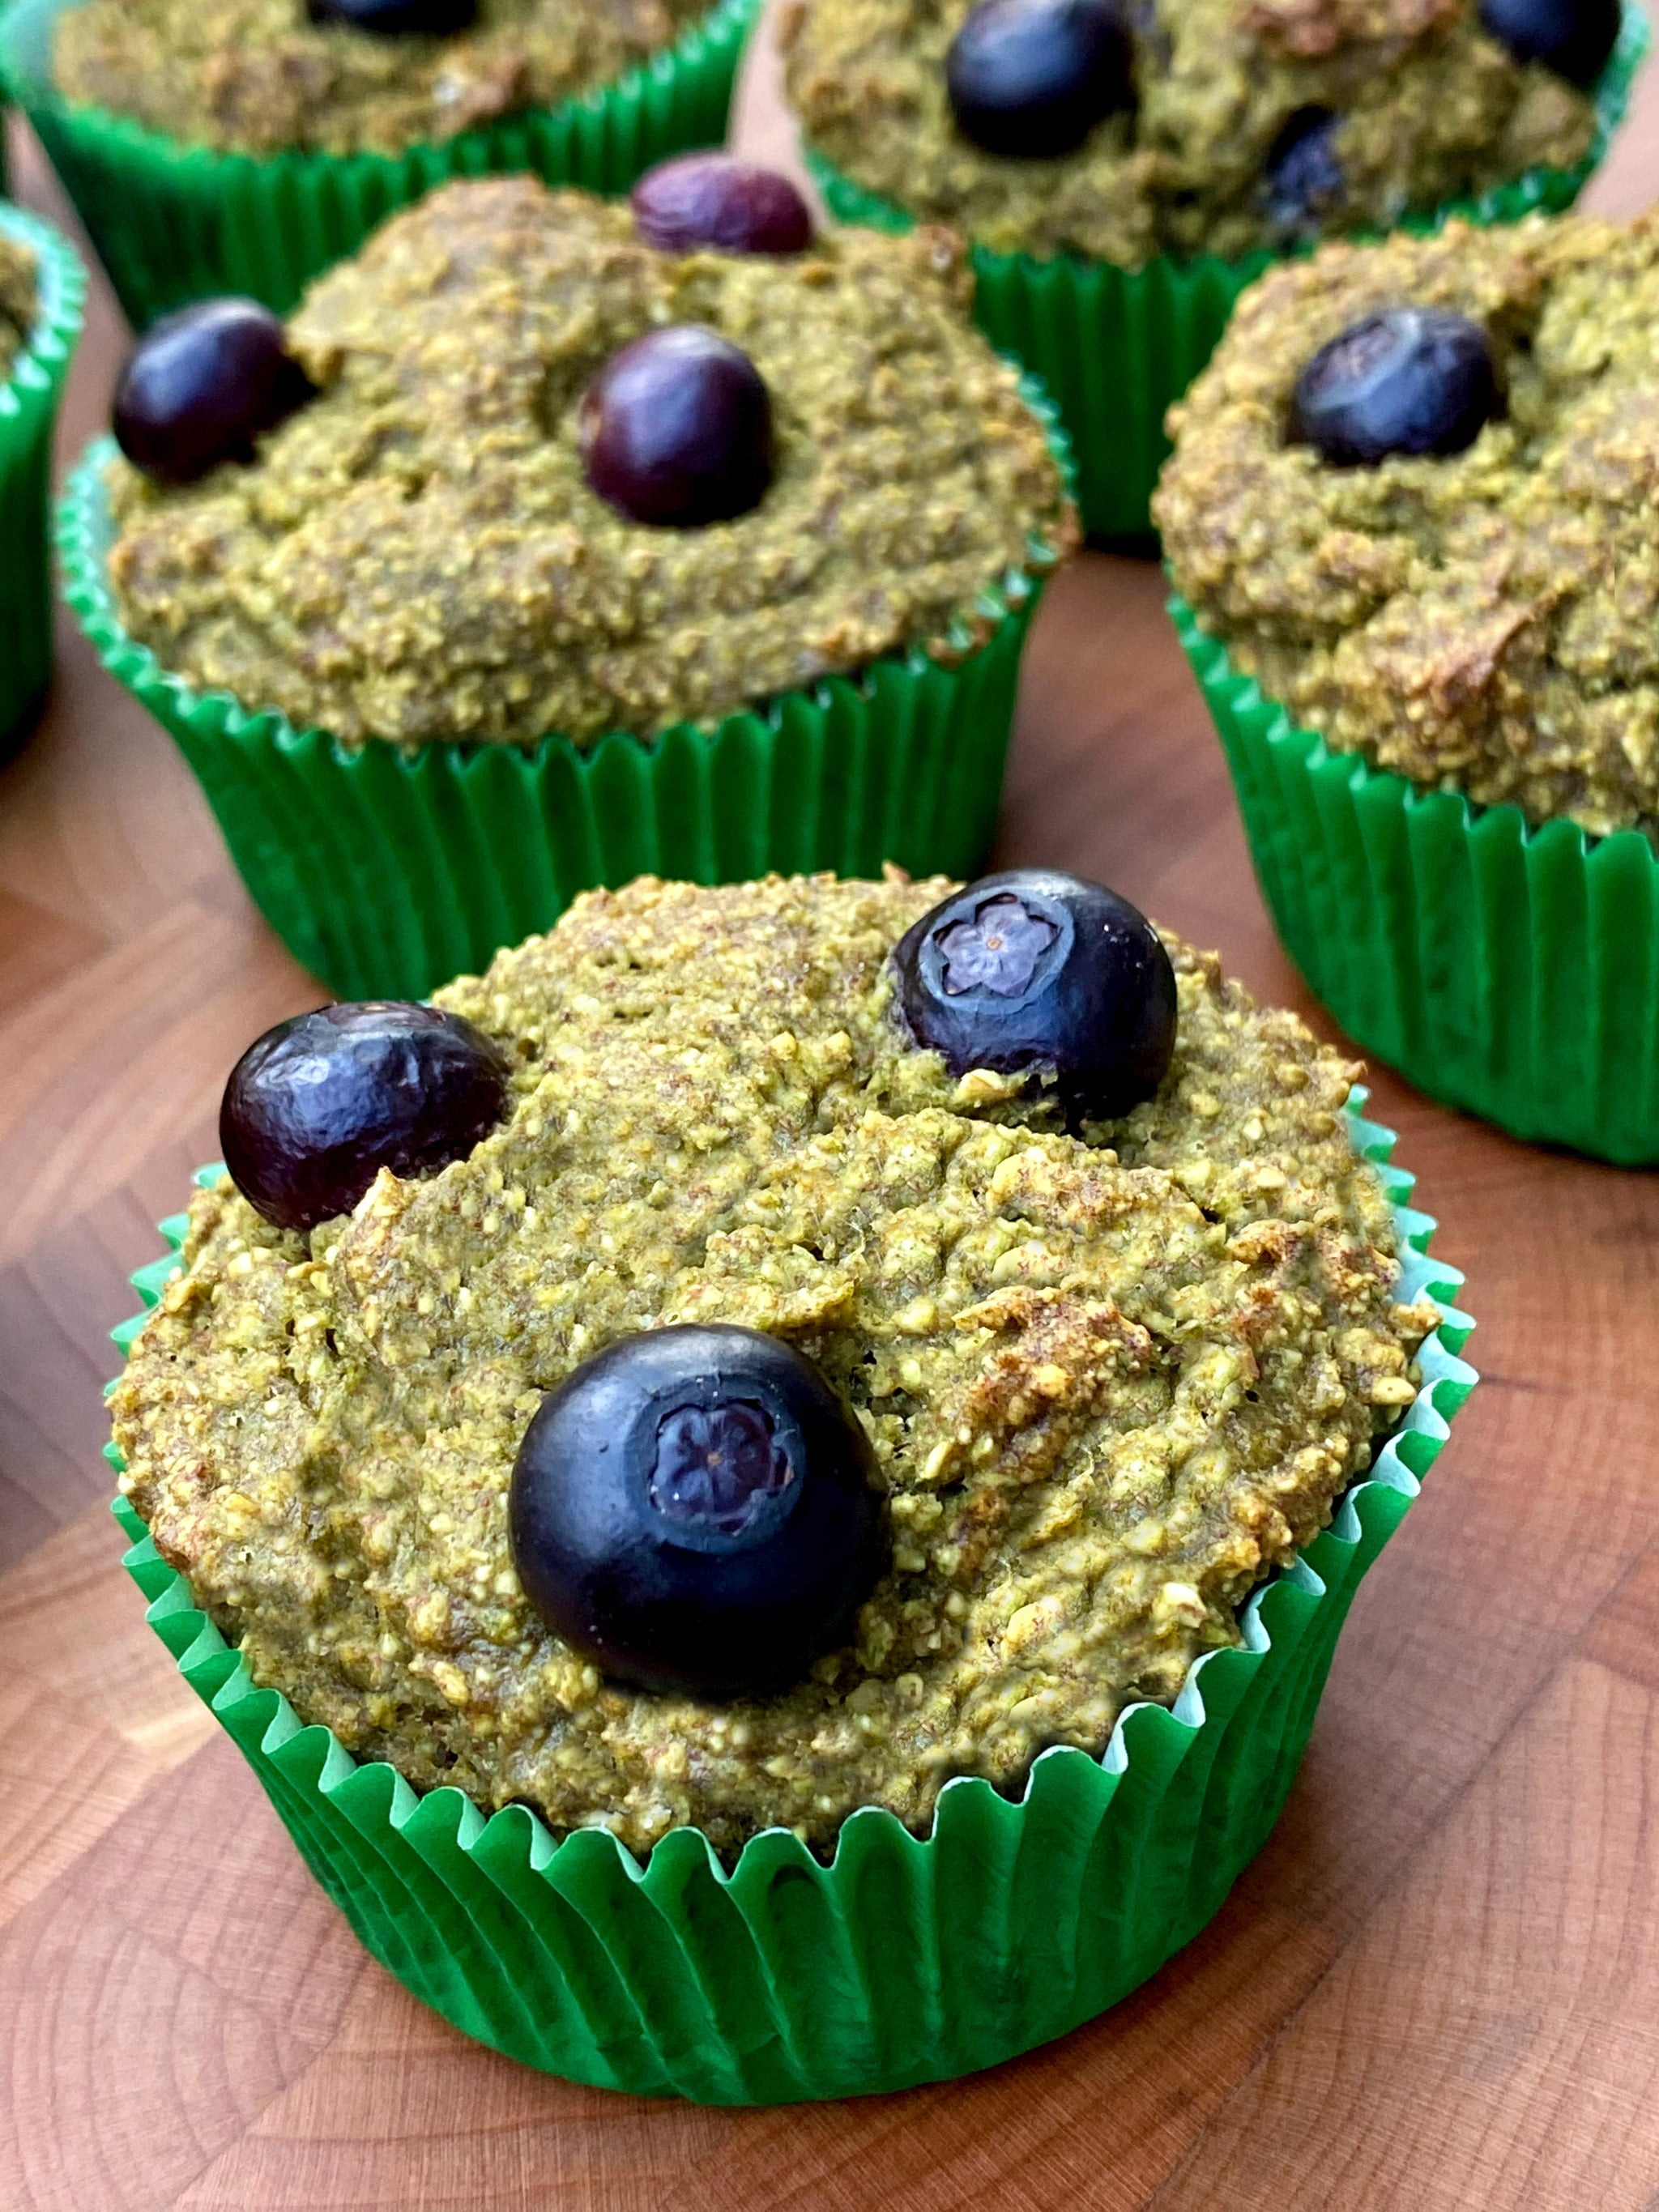 Refined-Sugar-Free Banana Blueberry Spinach Muffins 7